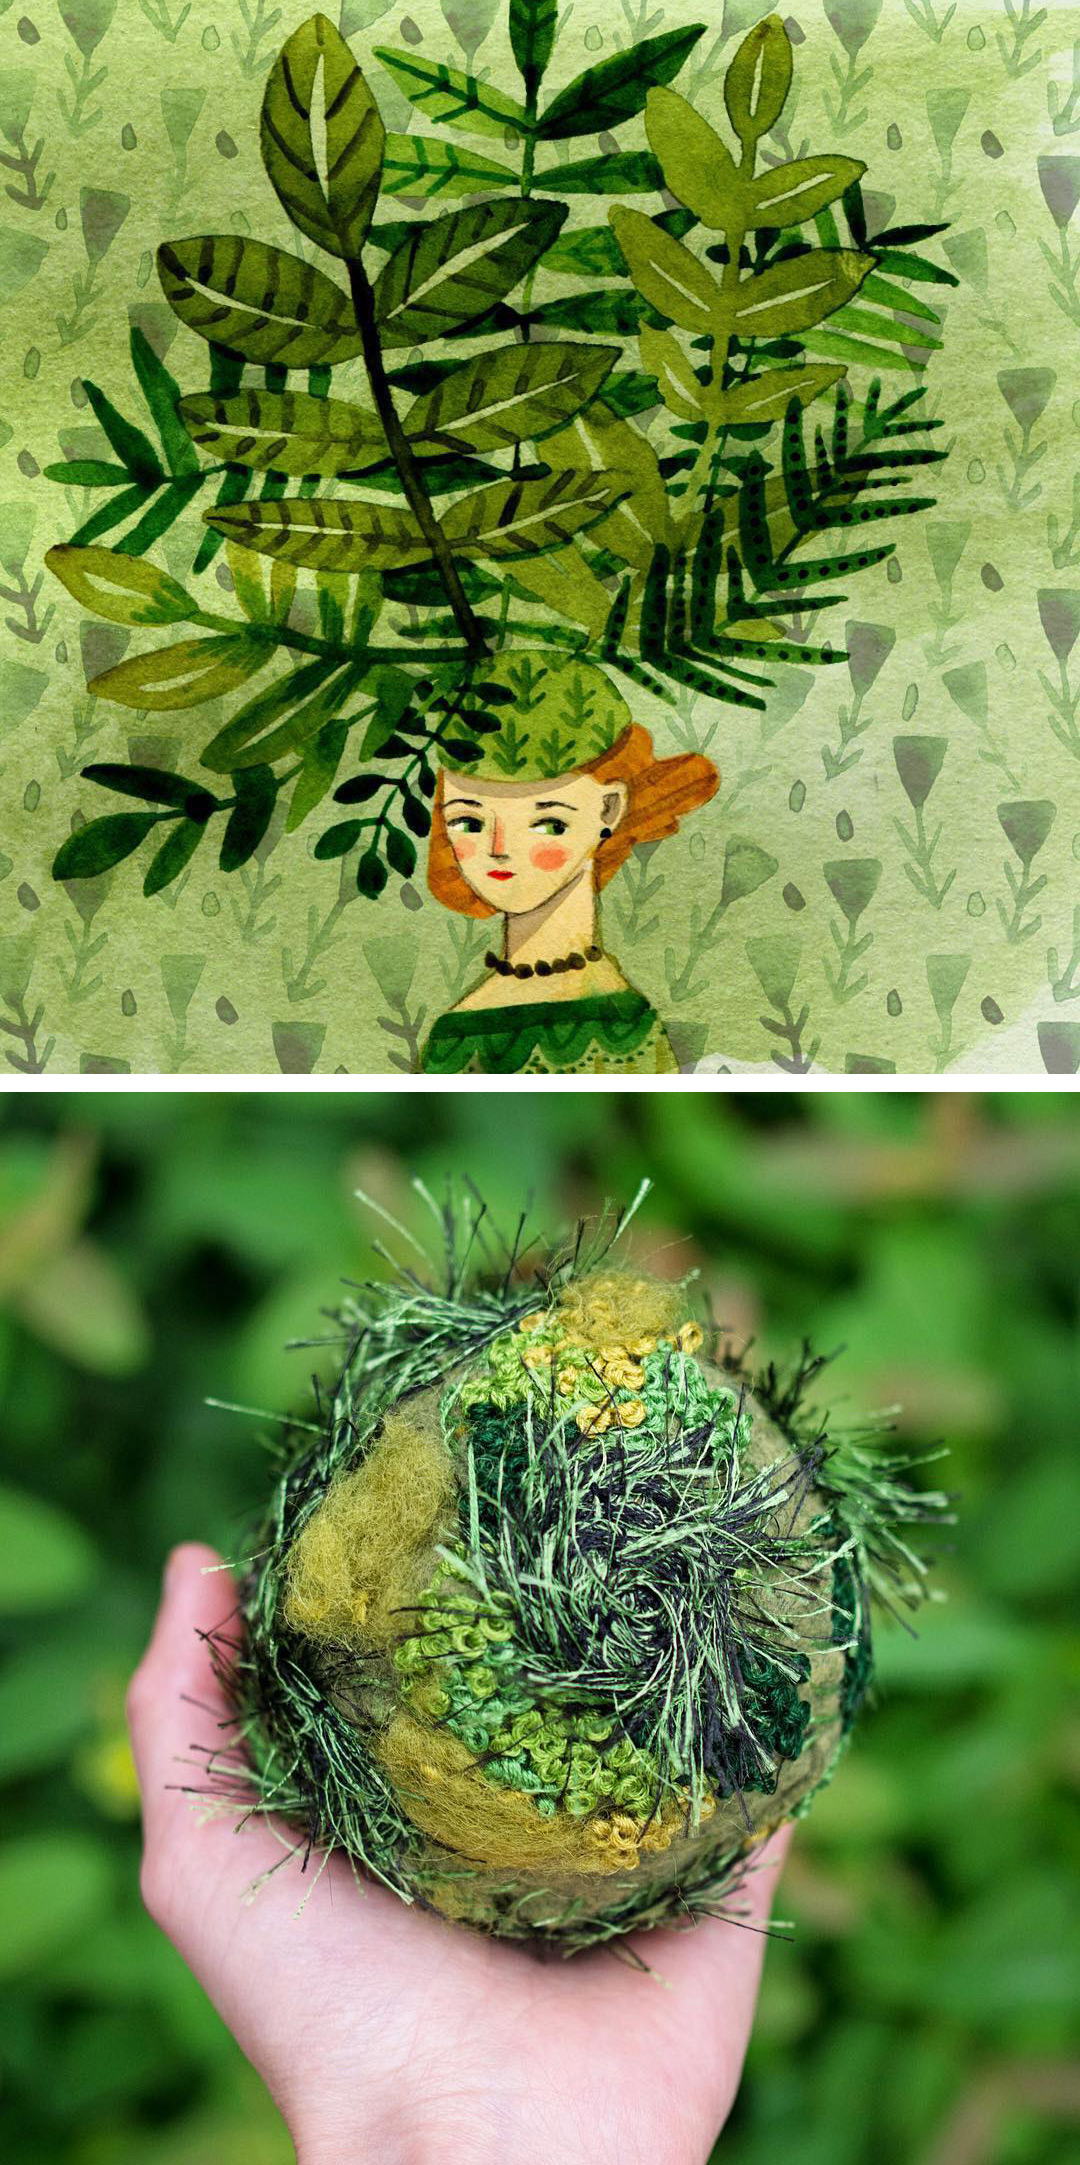 Green art — top: Abigail Halpin, bottom: Emma Mattson